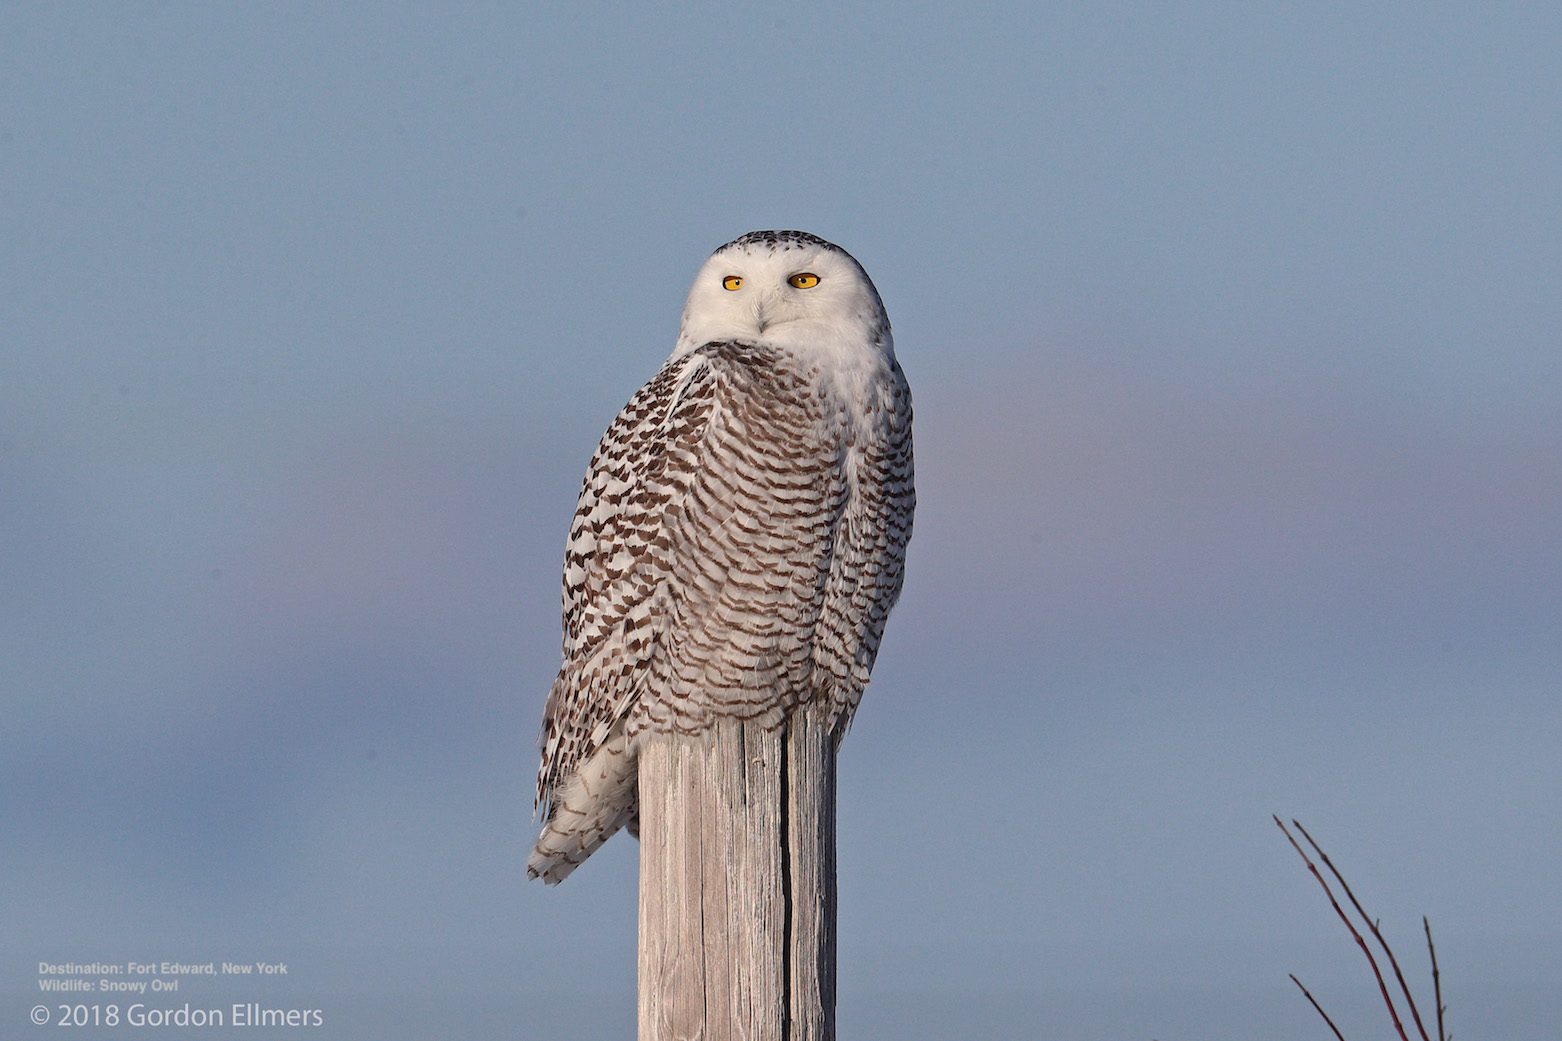 THE AMOUNT OF PREY AT THEIR ARCTIC NESTING GROUNDS, WEATHER, AND LOCAL CLIMATE CONDITIONS ALL FACTOR IN THE NUMBER AND RANGE OF SNOWY OWLS MIGRATING SOUTH FOR THE WINTER. IMAGE: ©GORDON ELLMERS